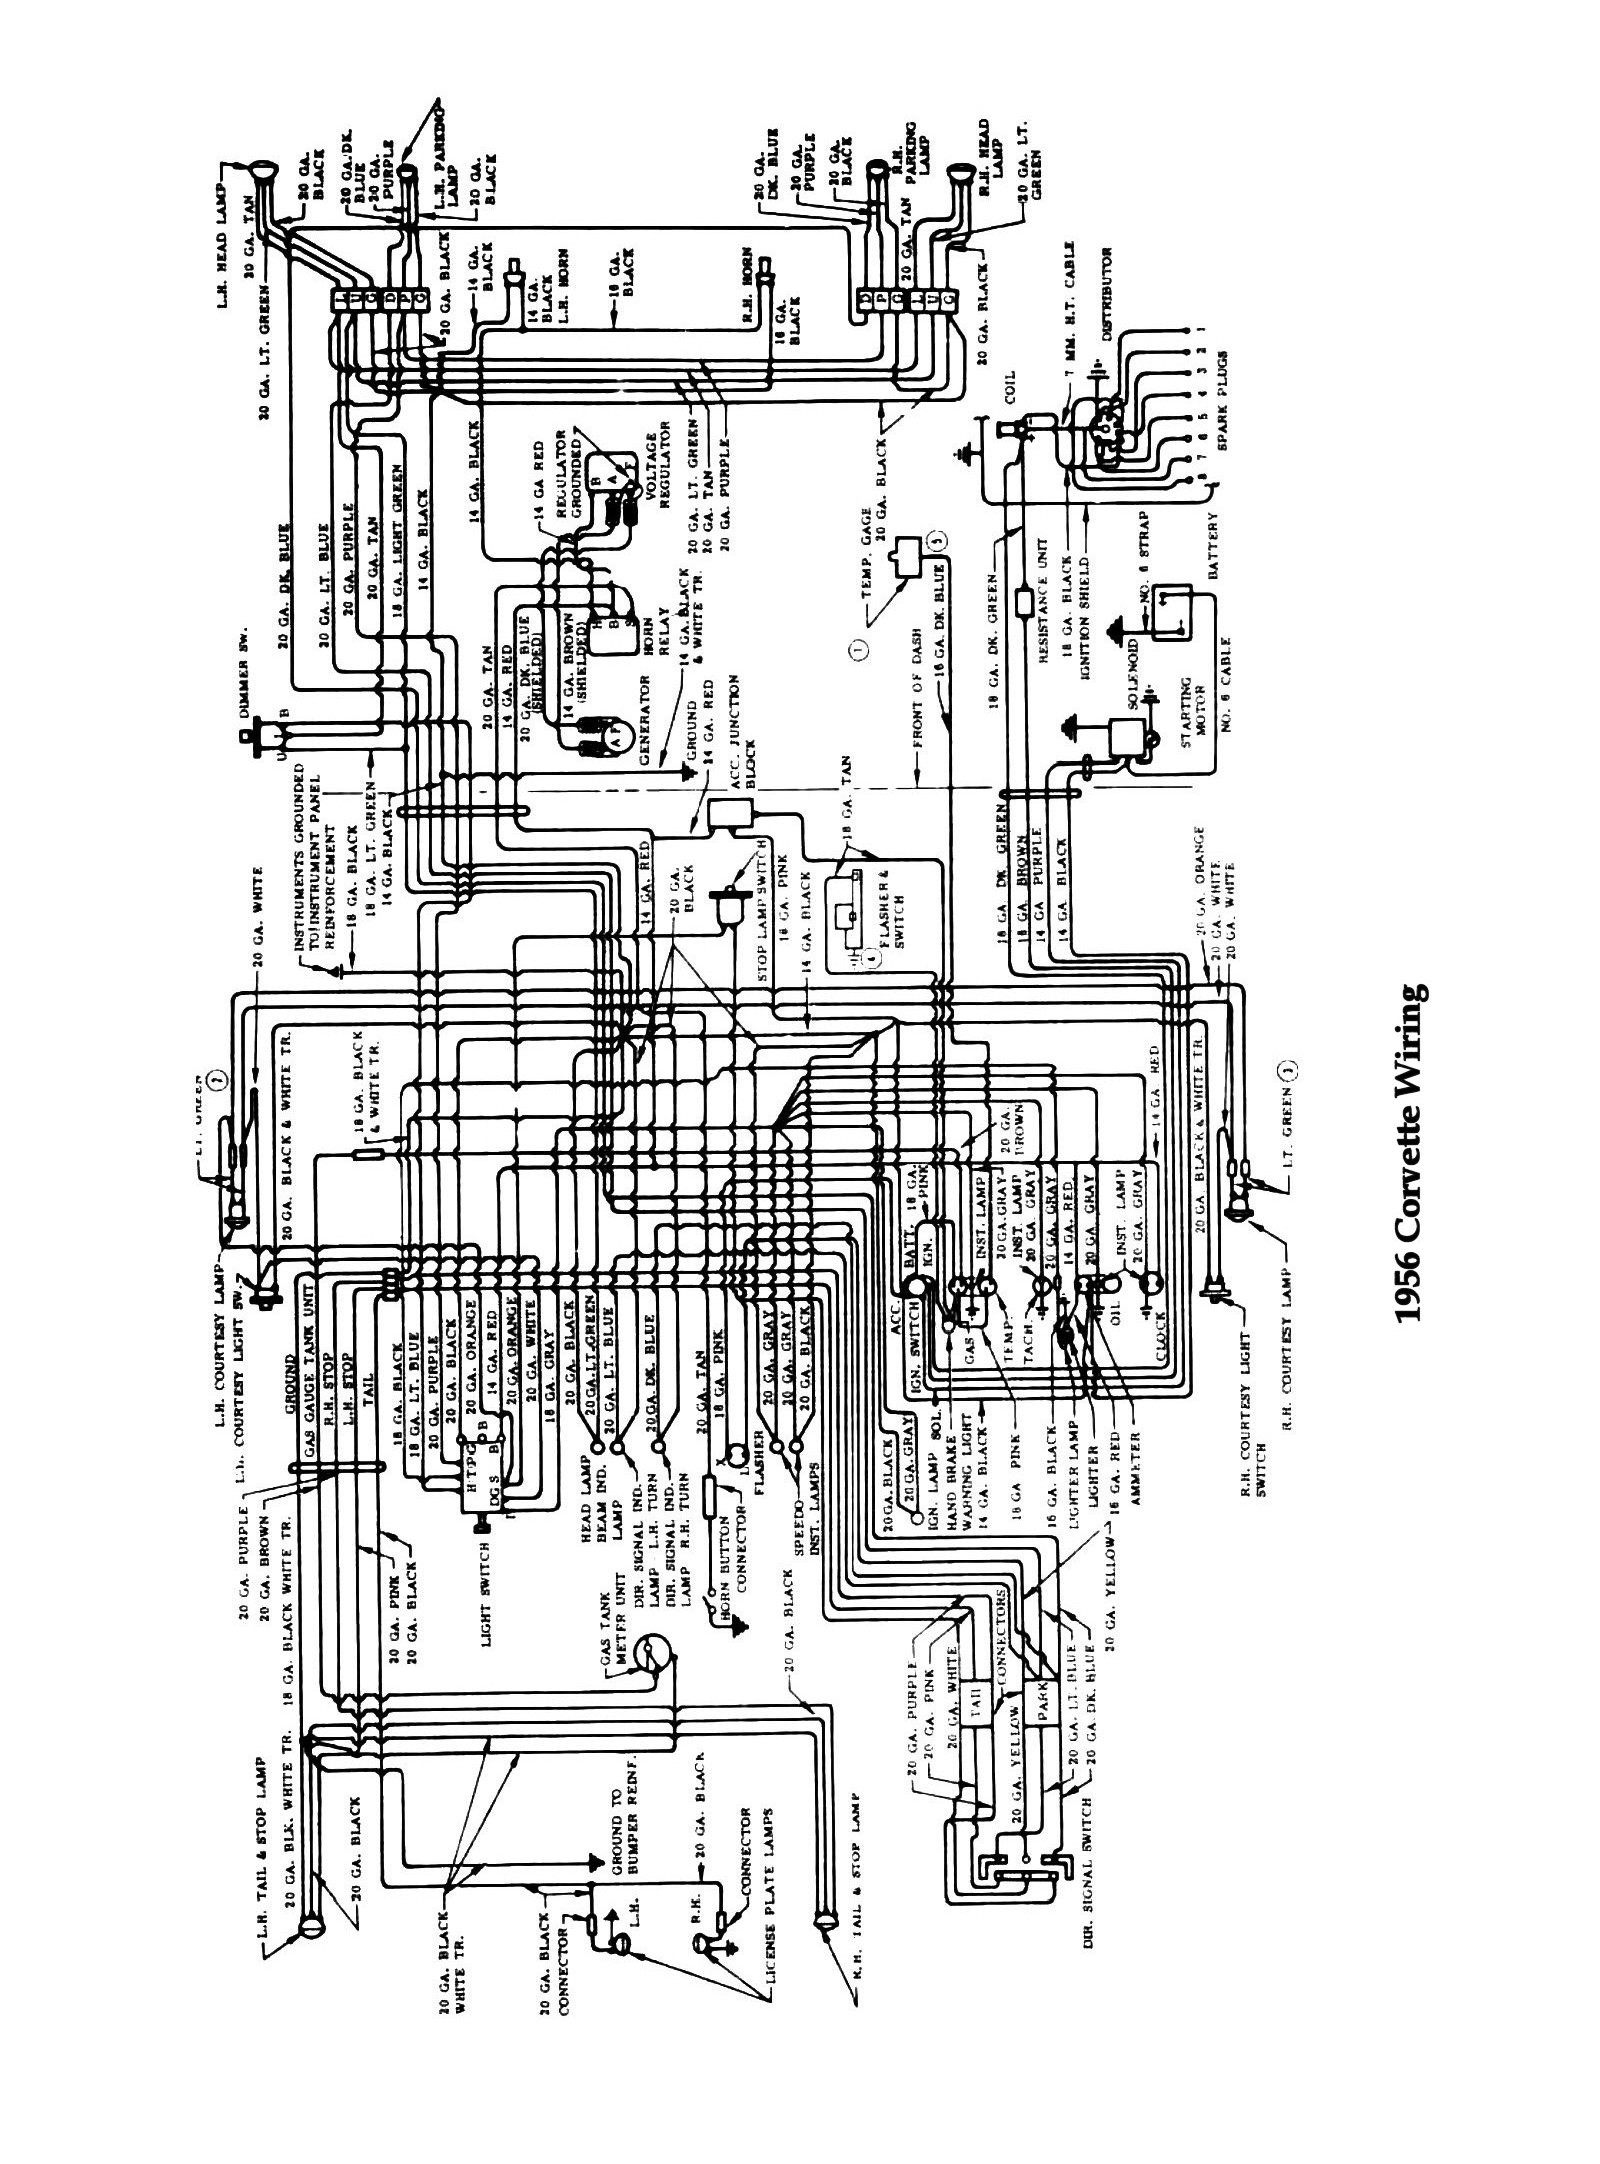 fuse diagram 56 corvette